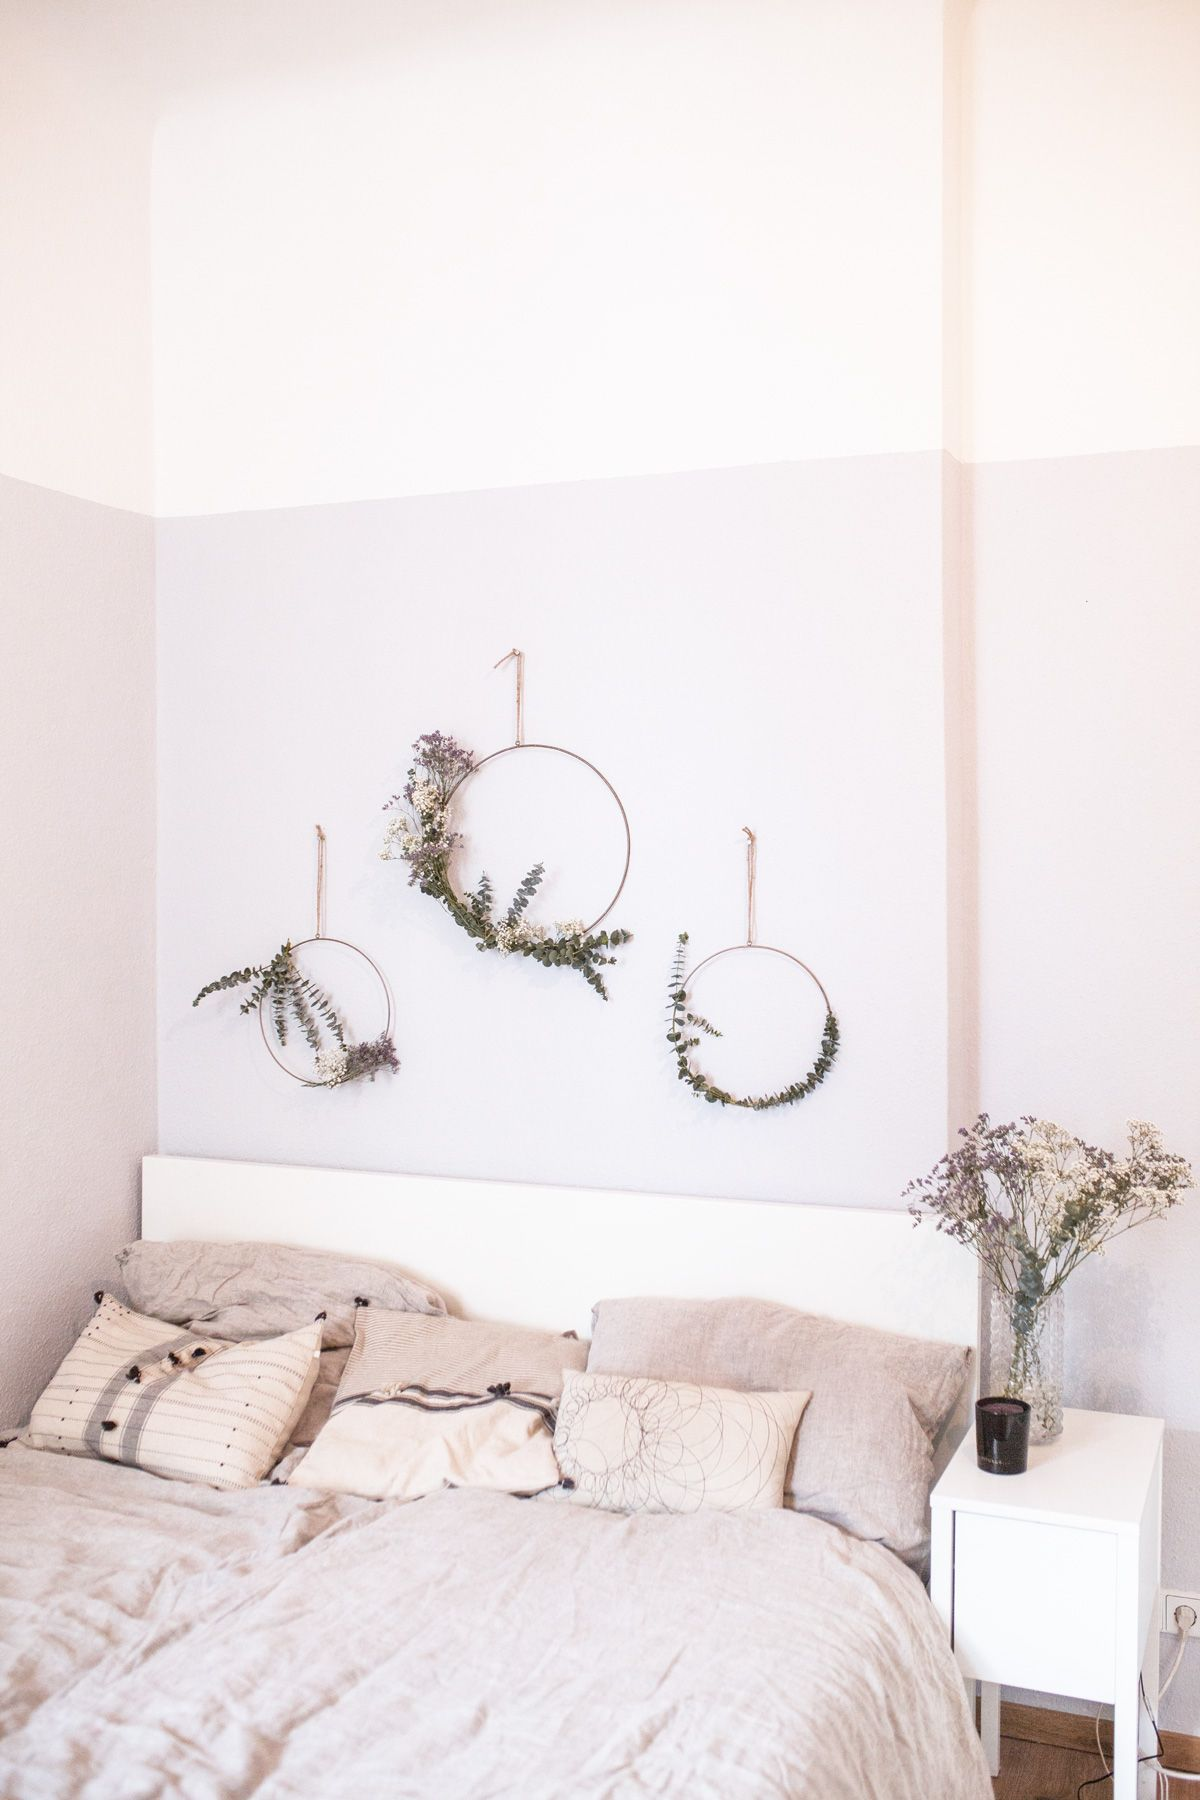 Bilder Deko Schlafzimmer Diy Eukalyptus Kranz The Art Of Home Schlafzimmer Deko Diy